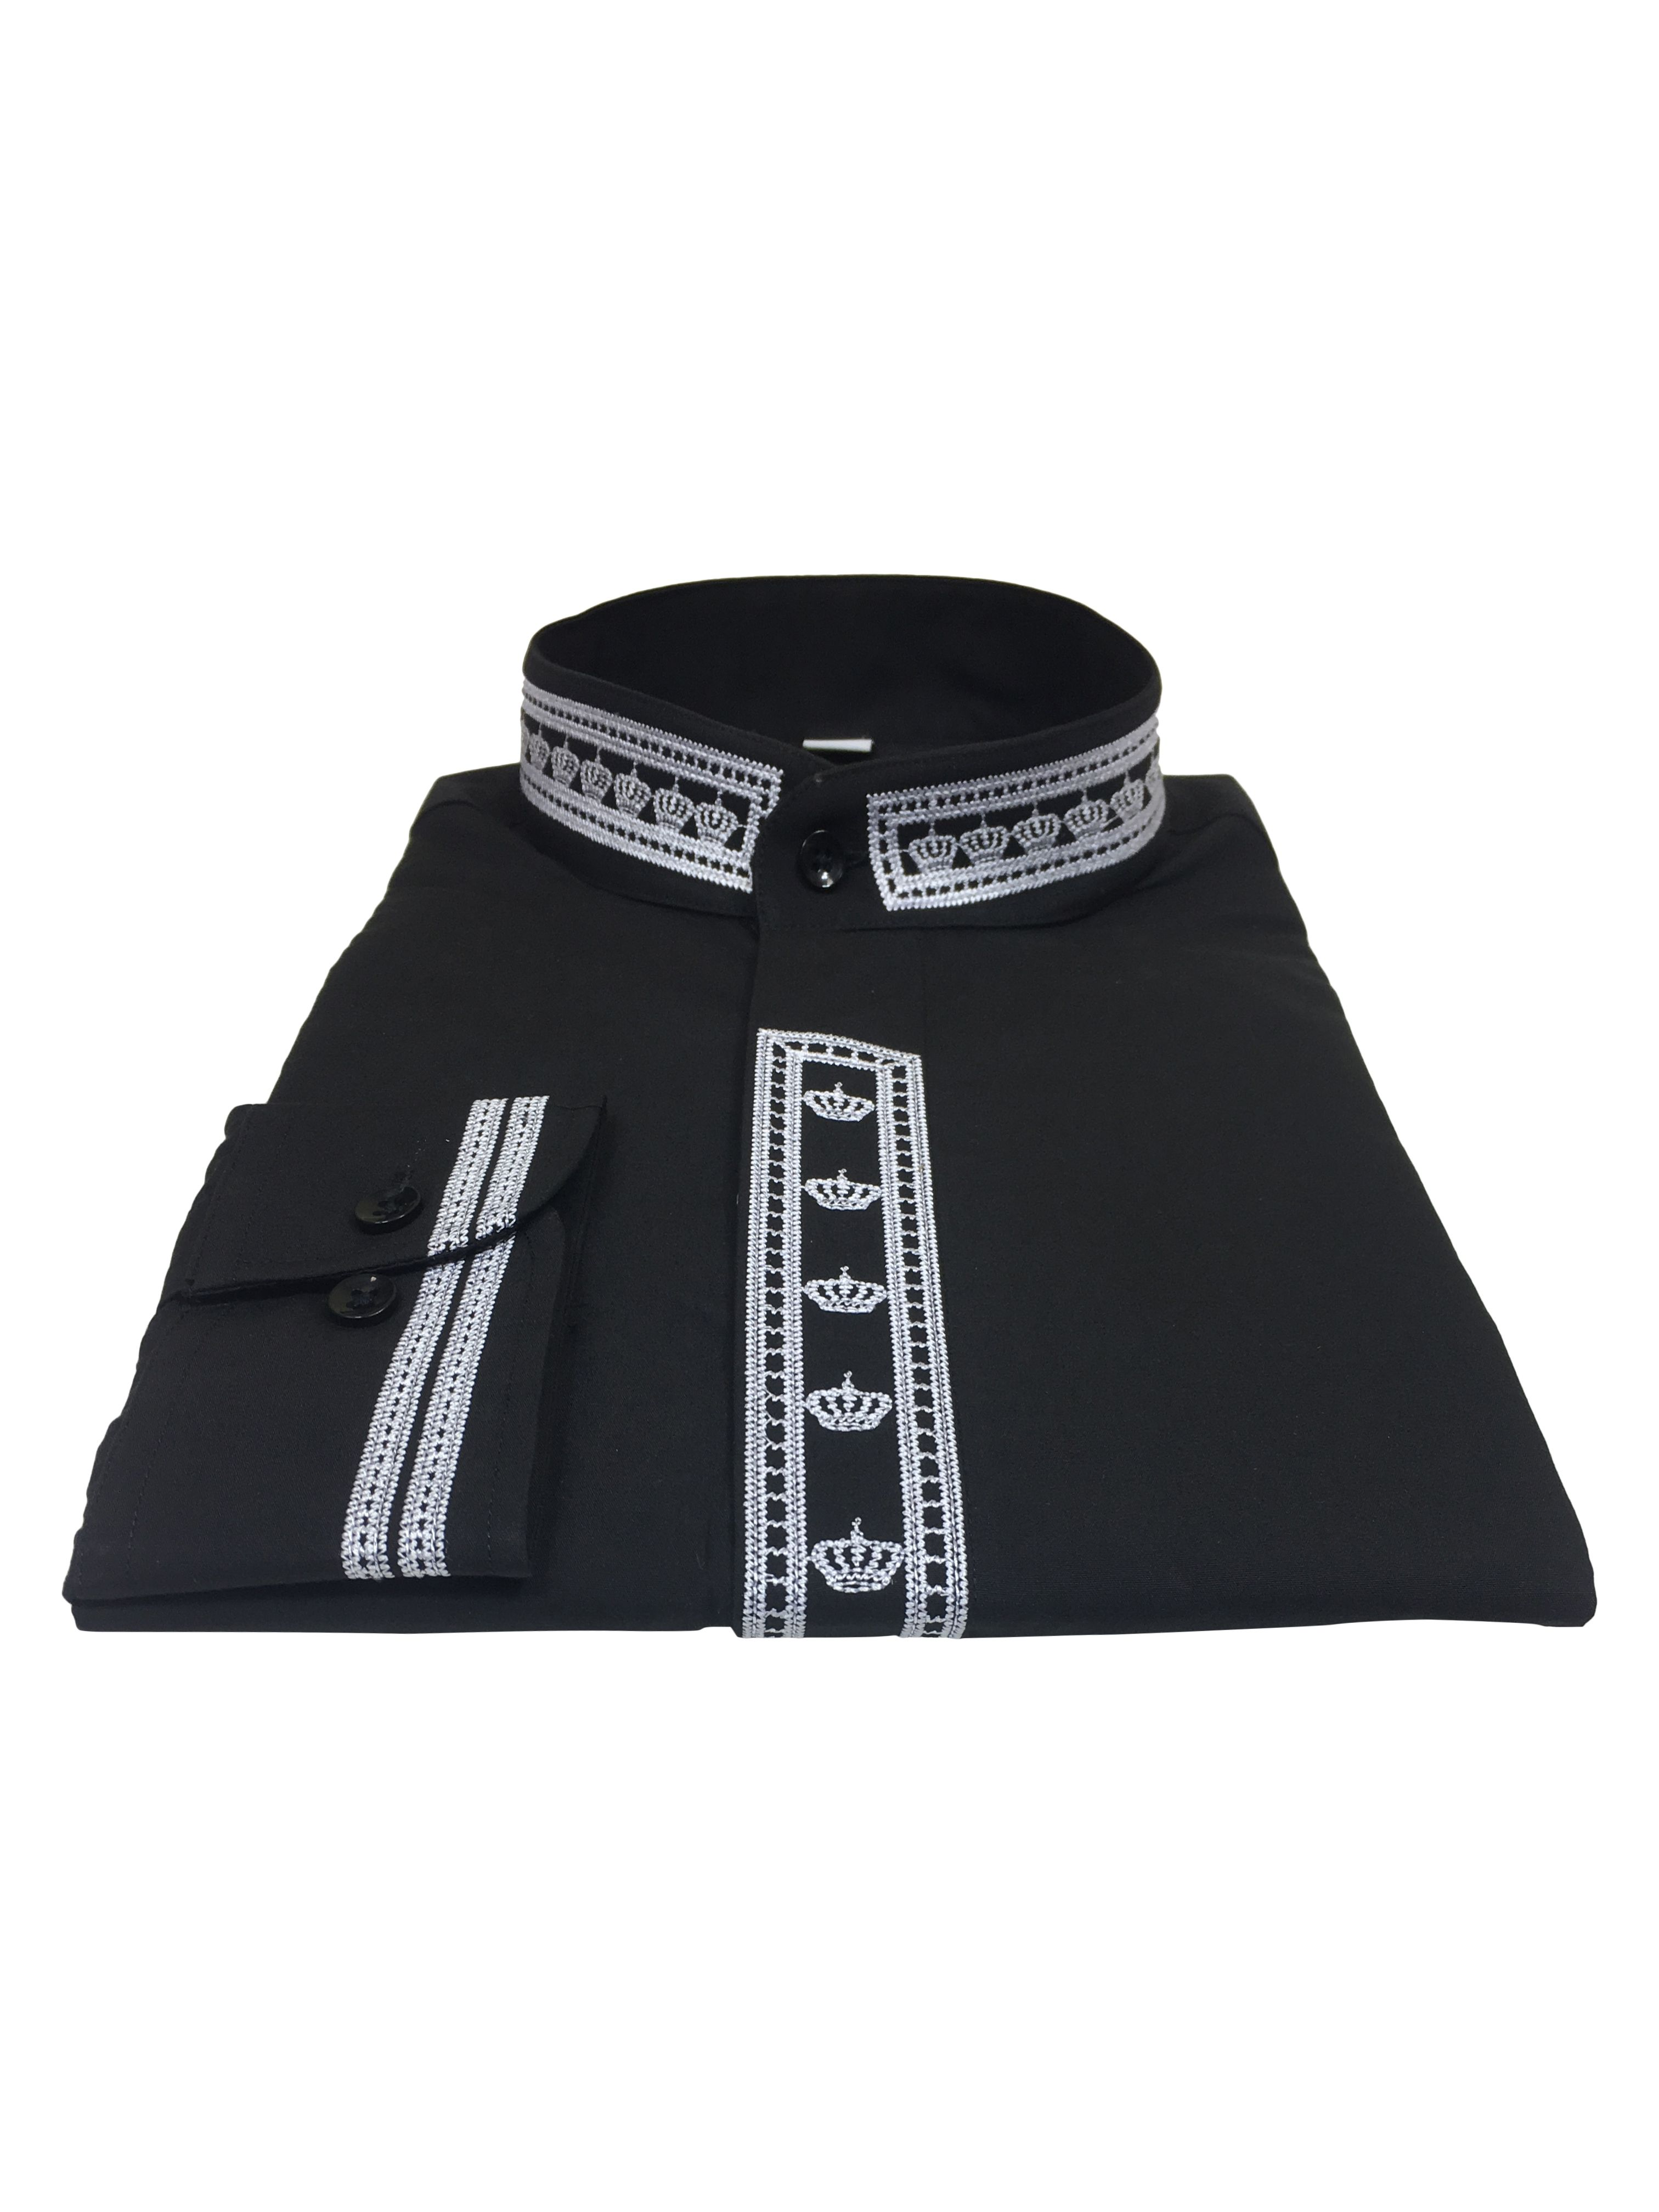 341. Men's Clergy Shirt With Rejoice Crown Fine Embroidery Long Sleeves- Black/White